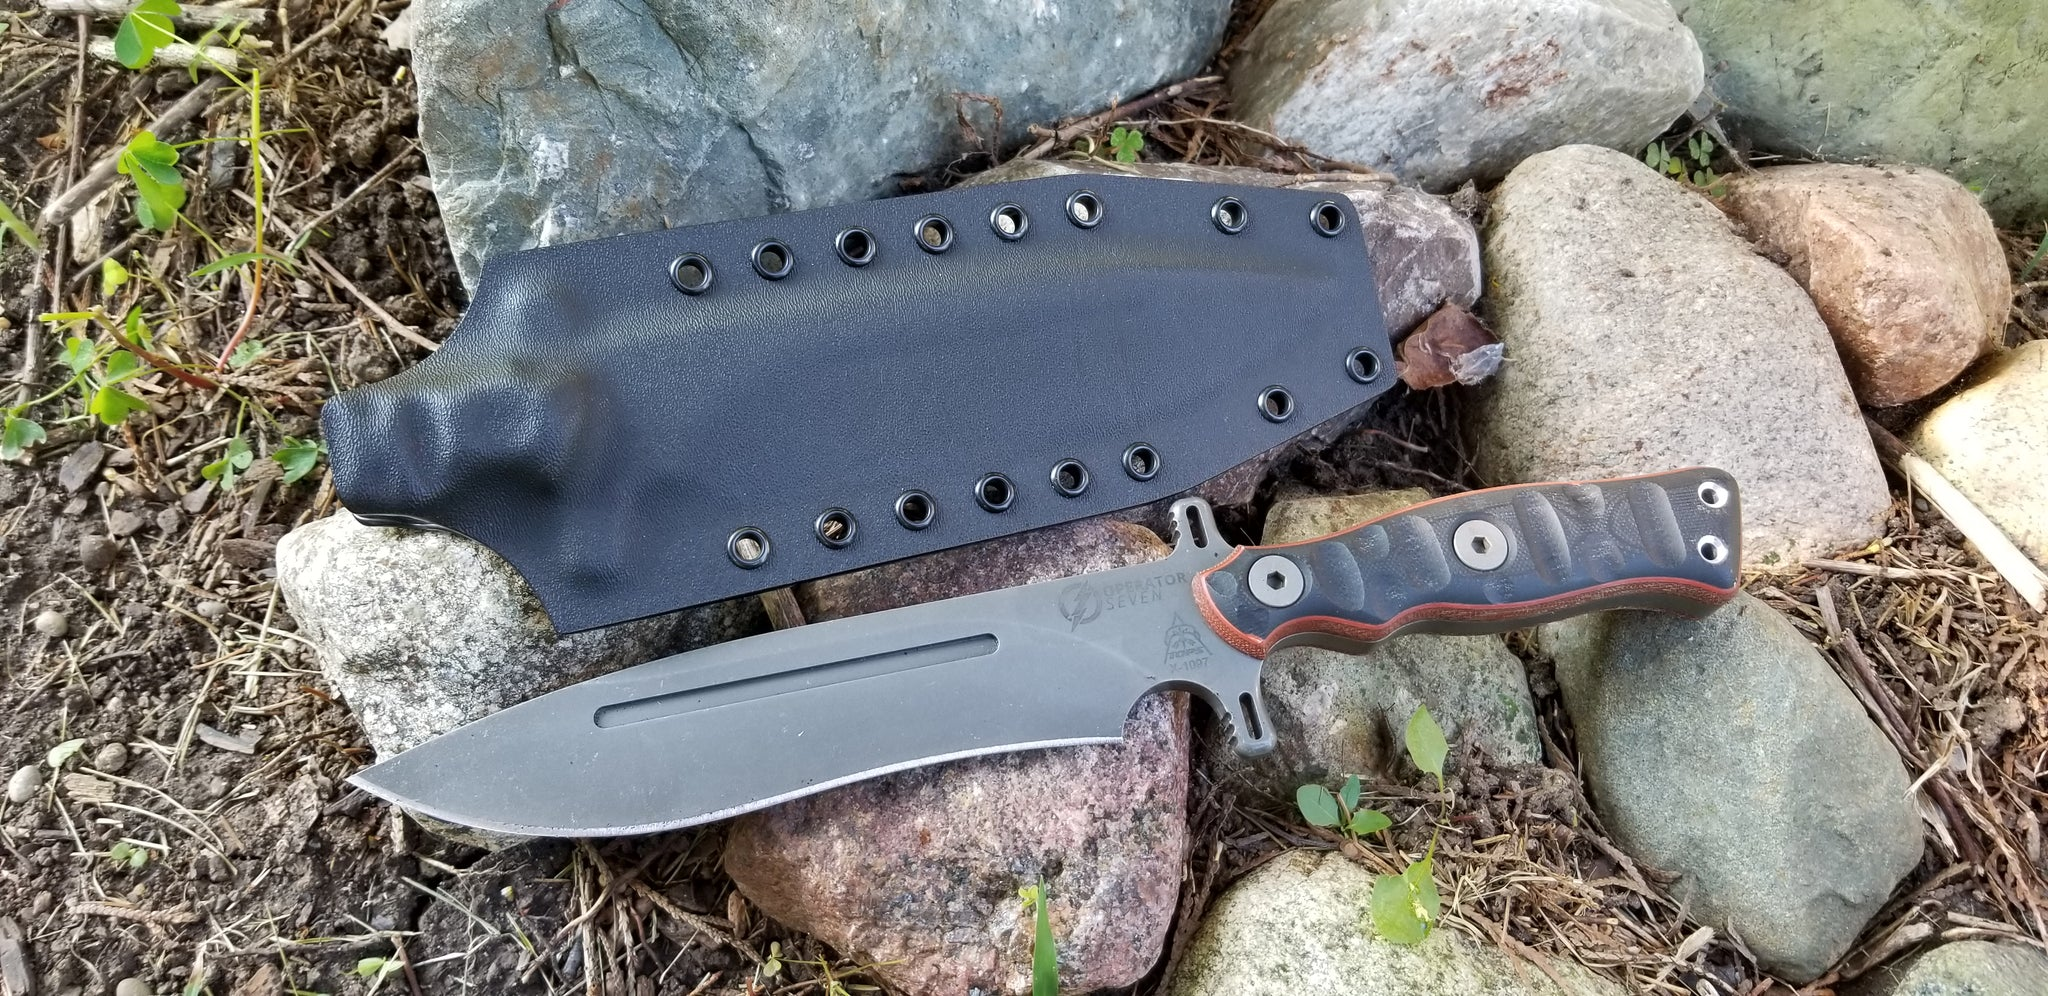 TOPS OPERATOR SEVEN custom kydex sheath